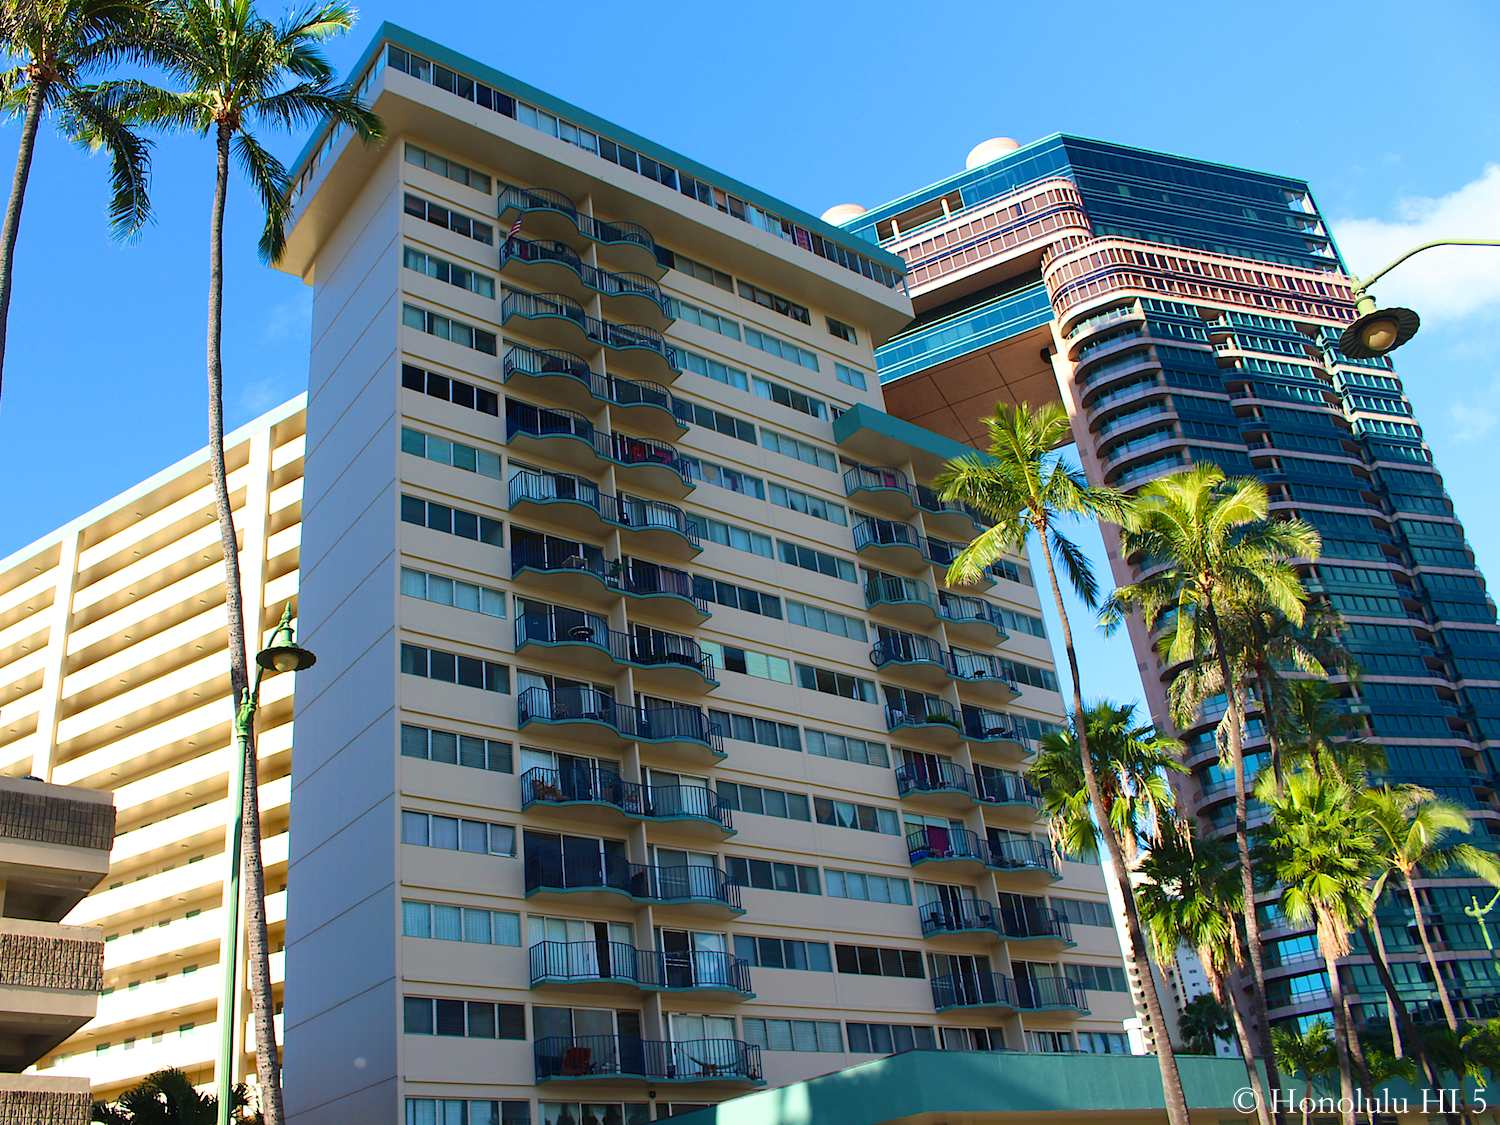 Royal Aloha Waikiki Condo with Landmark in Background